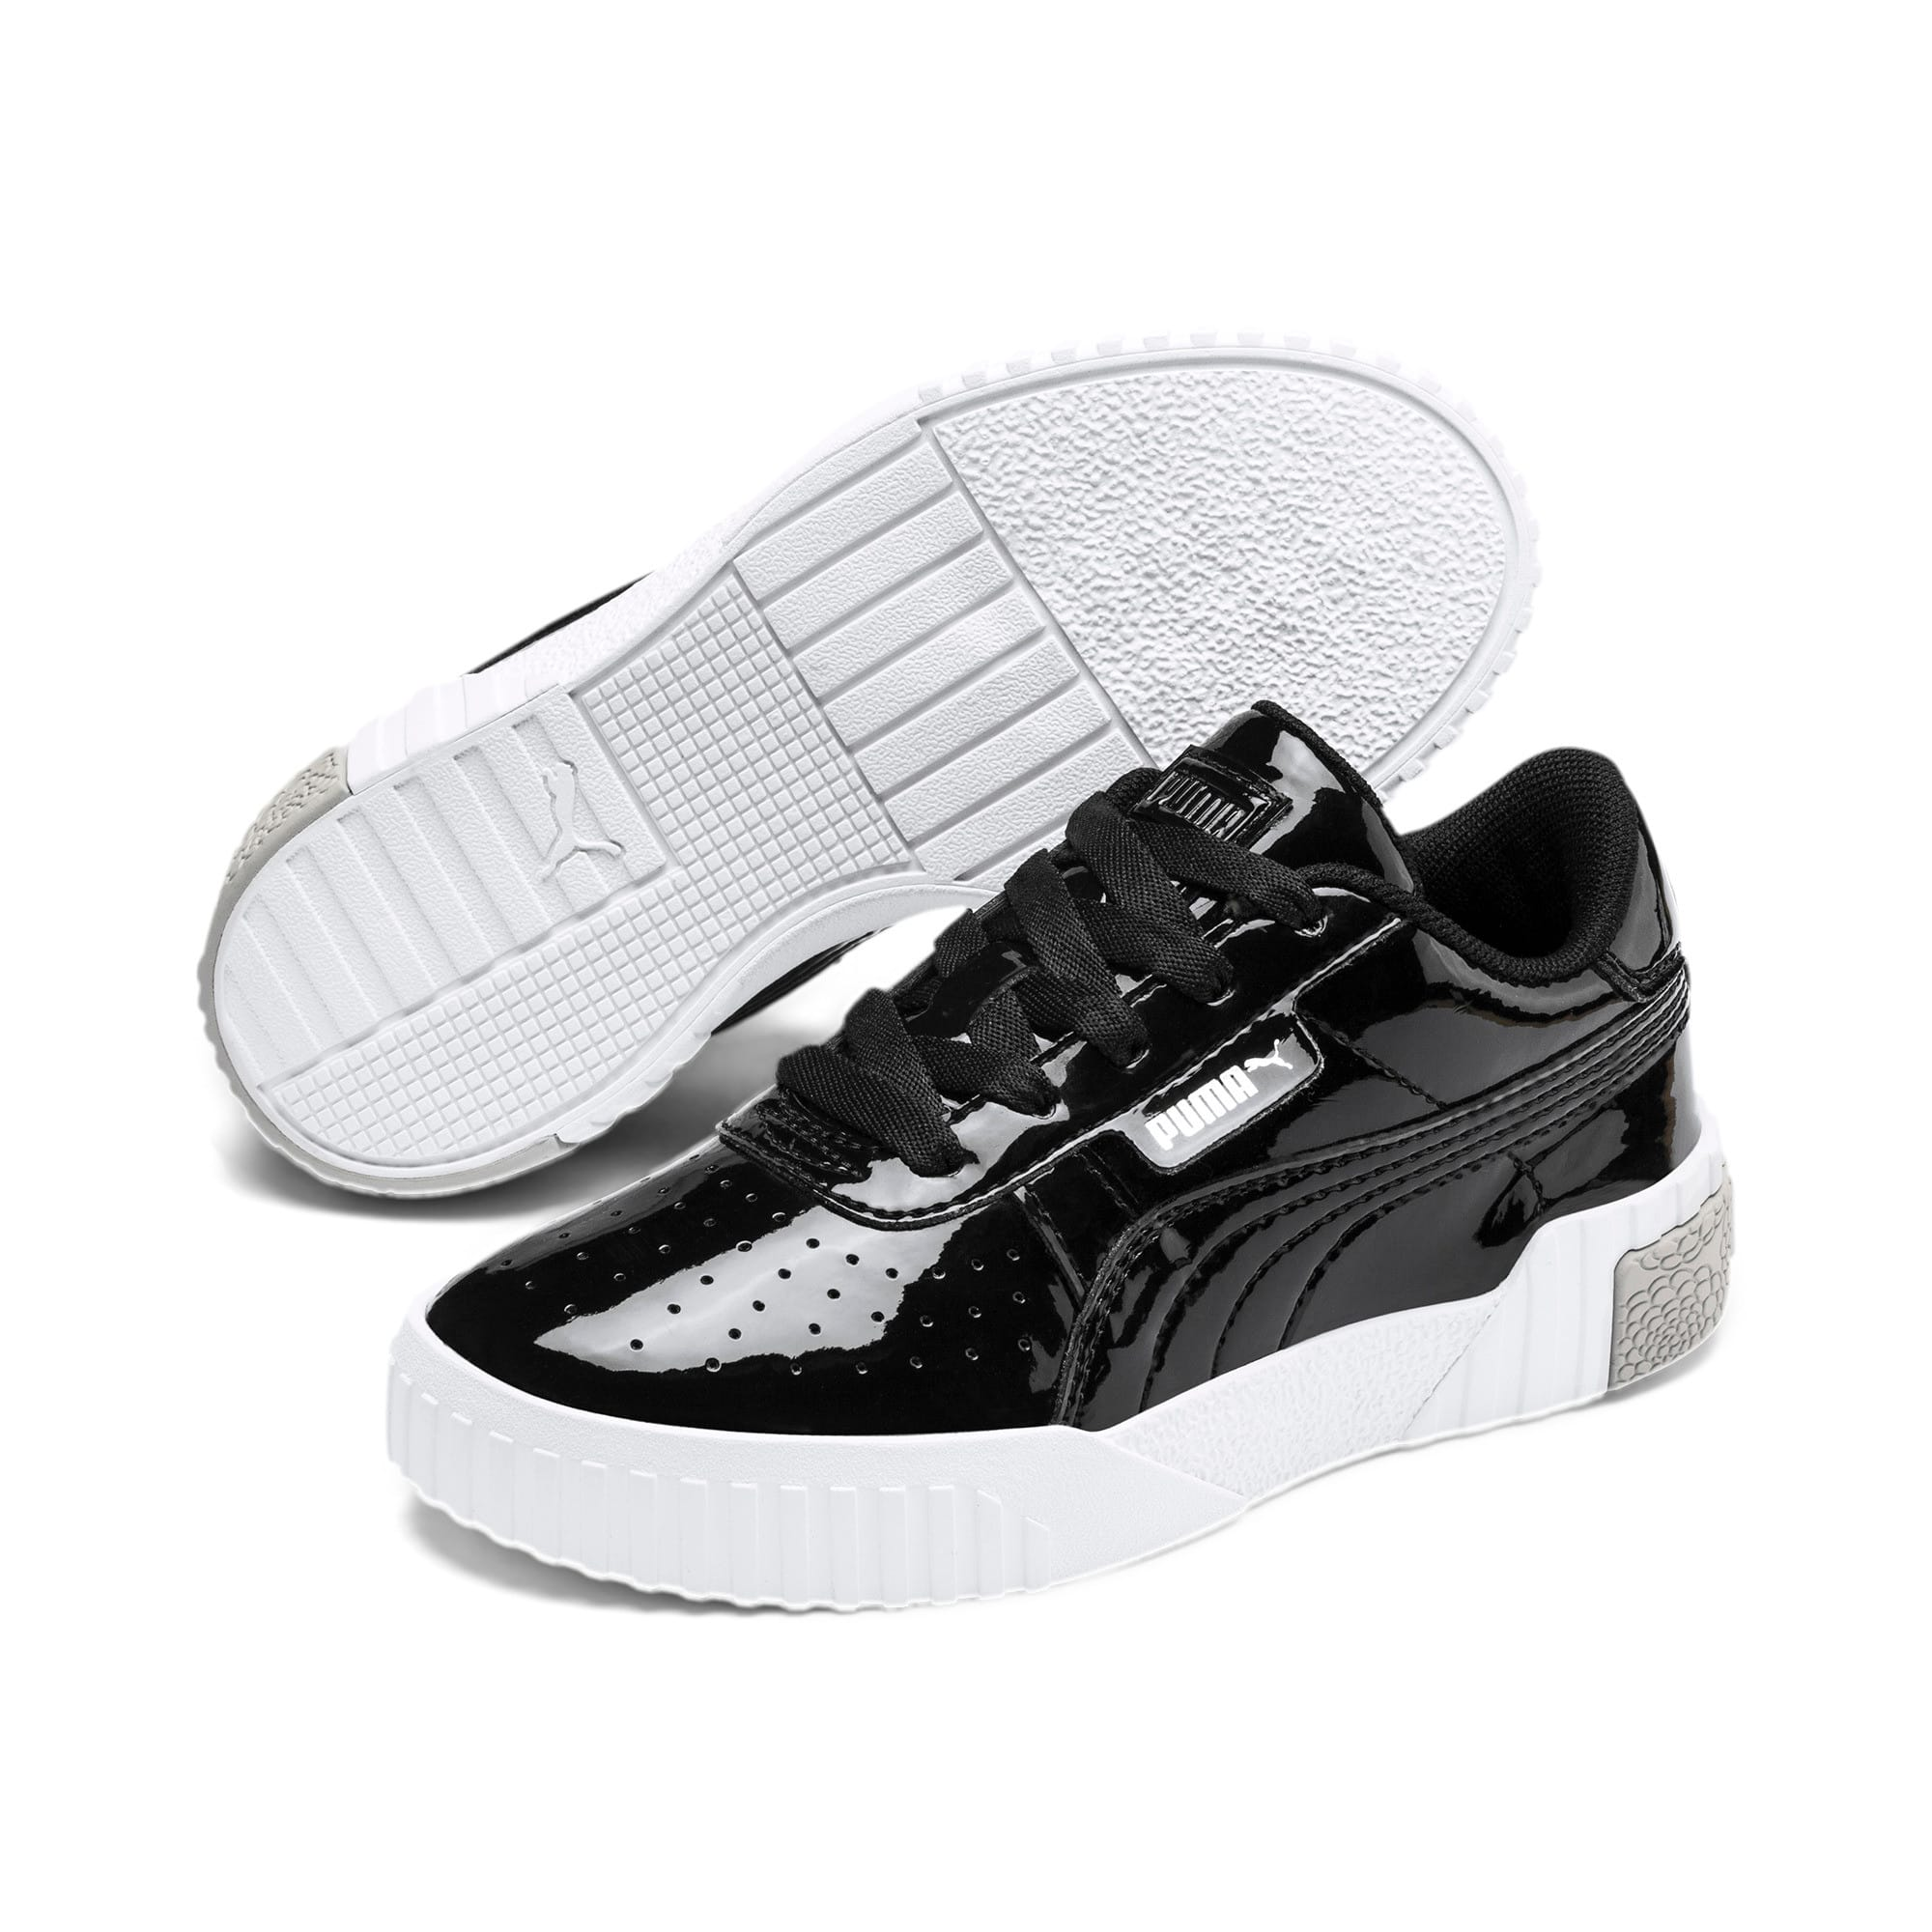 Thumbnail 2 of Cali Patent Kids' Trainers, Puma Black-Puma White, medium